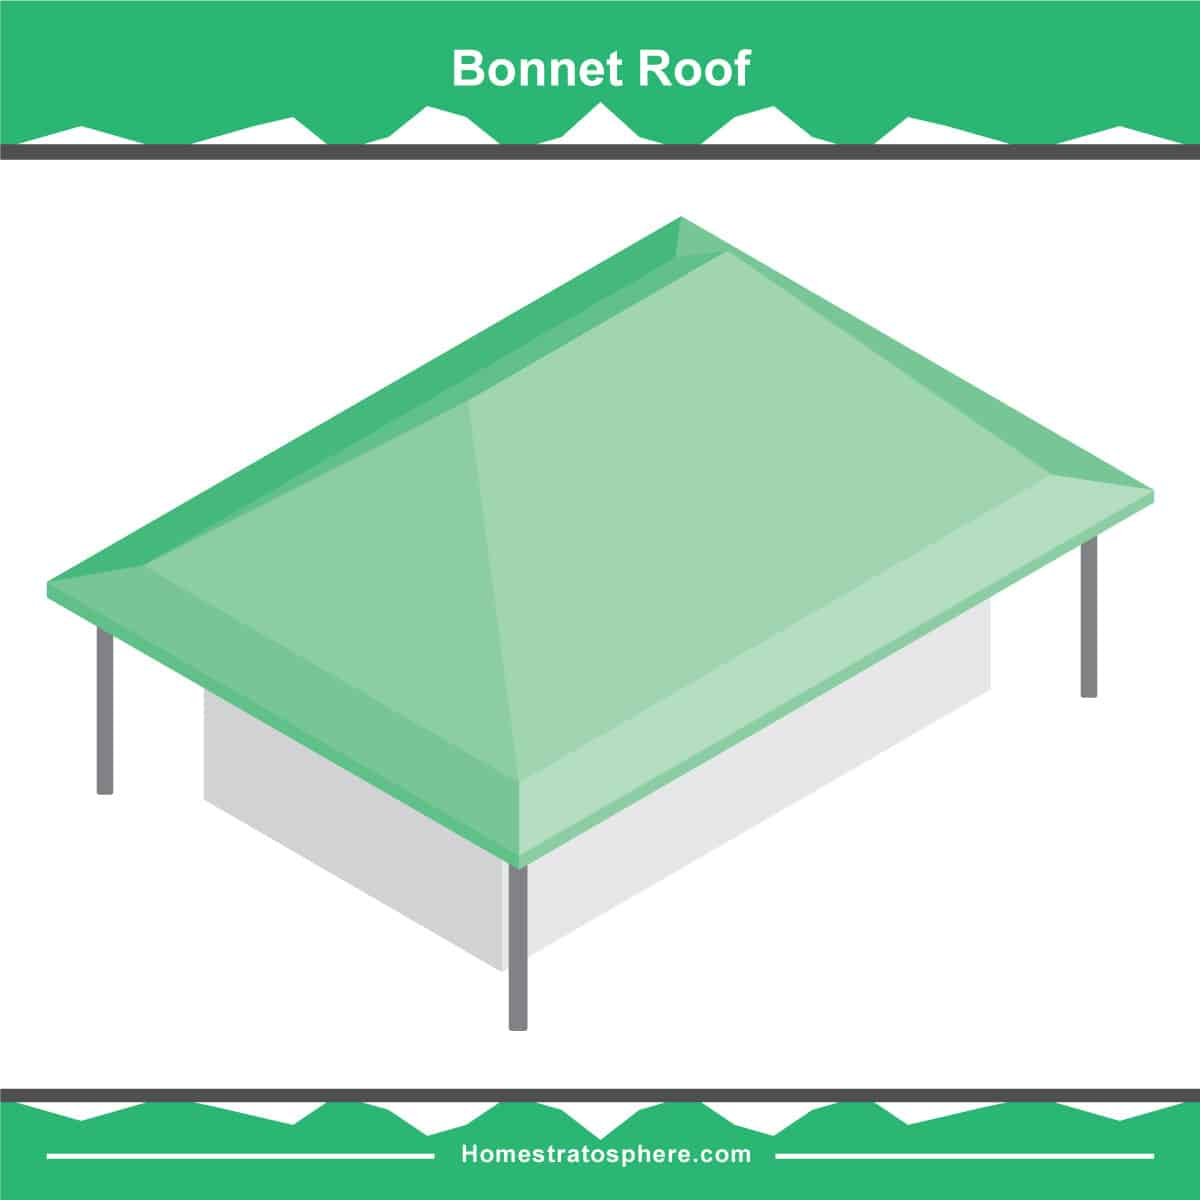 Bonnet roof illustration